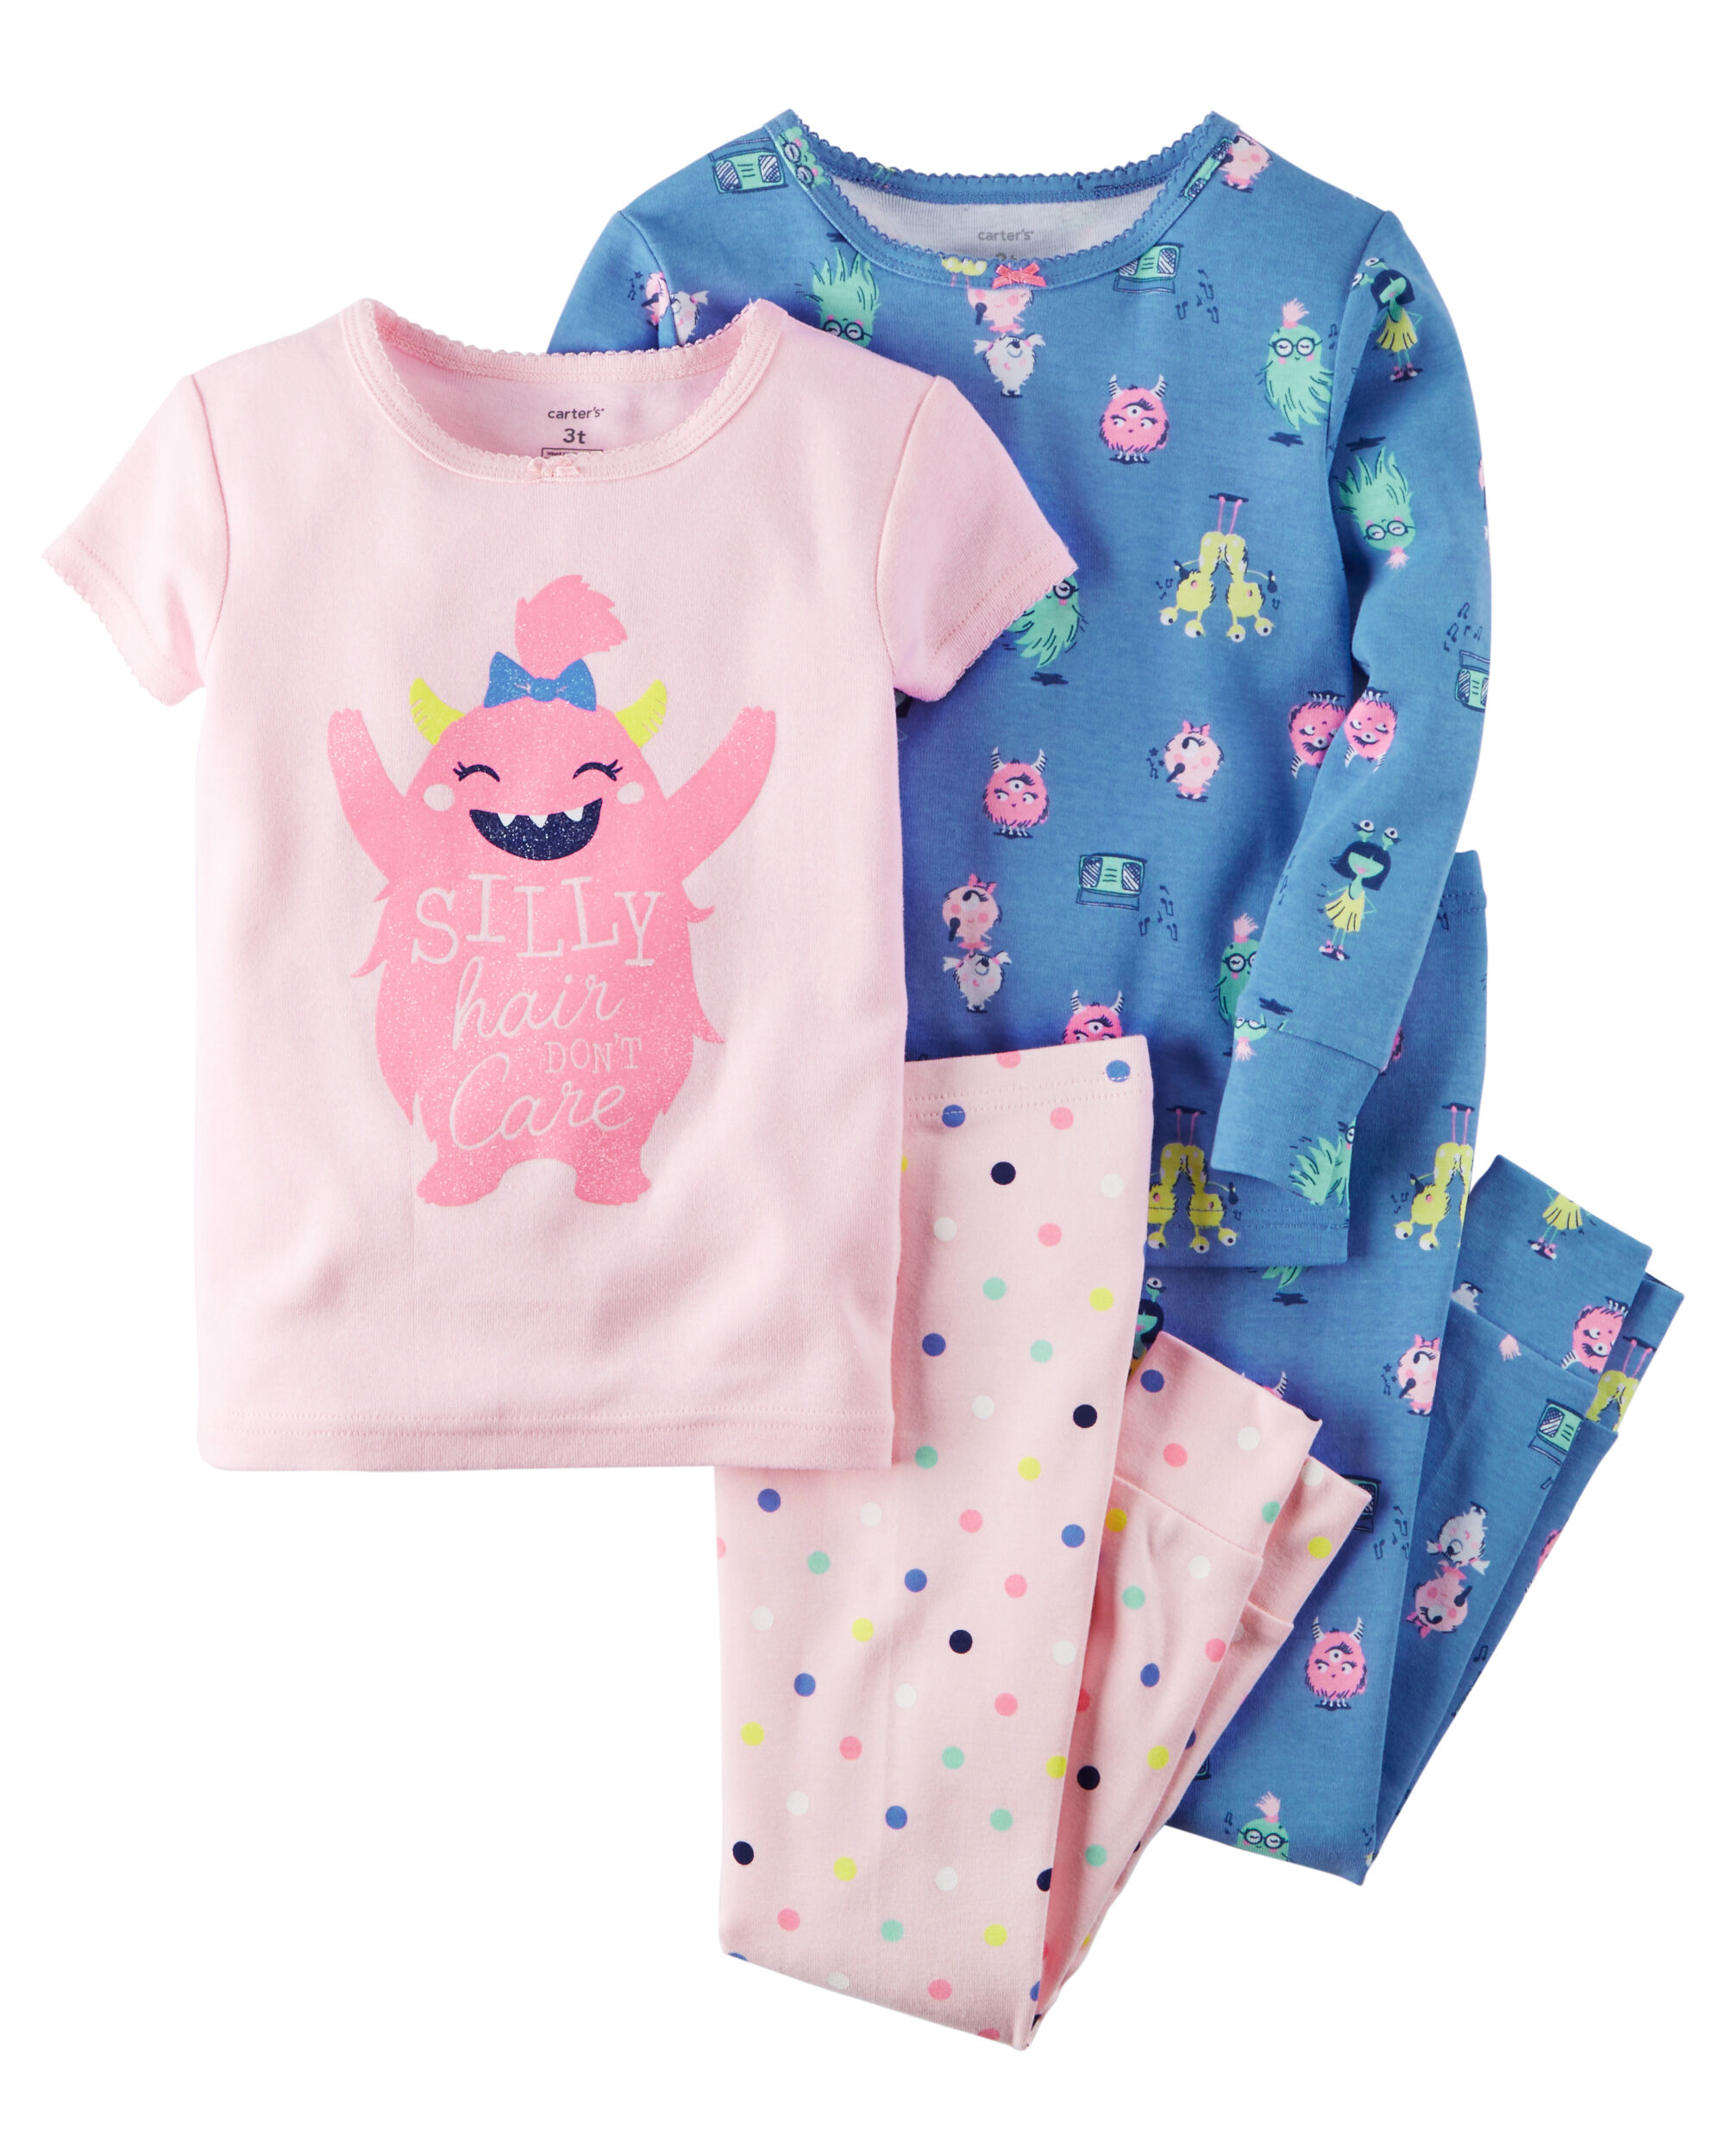 Carters Baby Clothes Retailers Newest and Cutest Baby Clothing